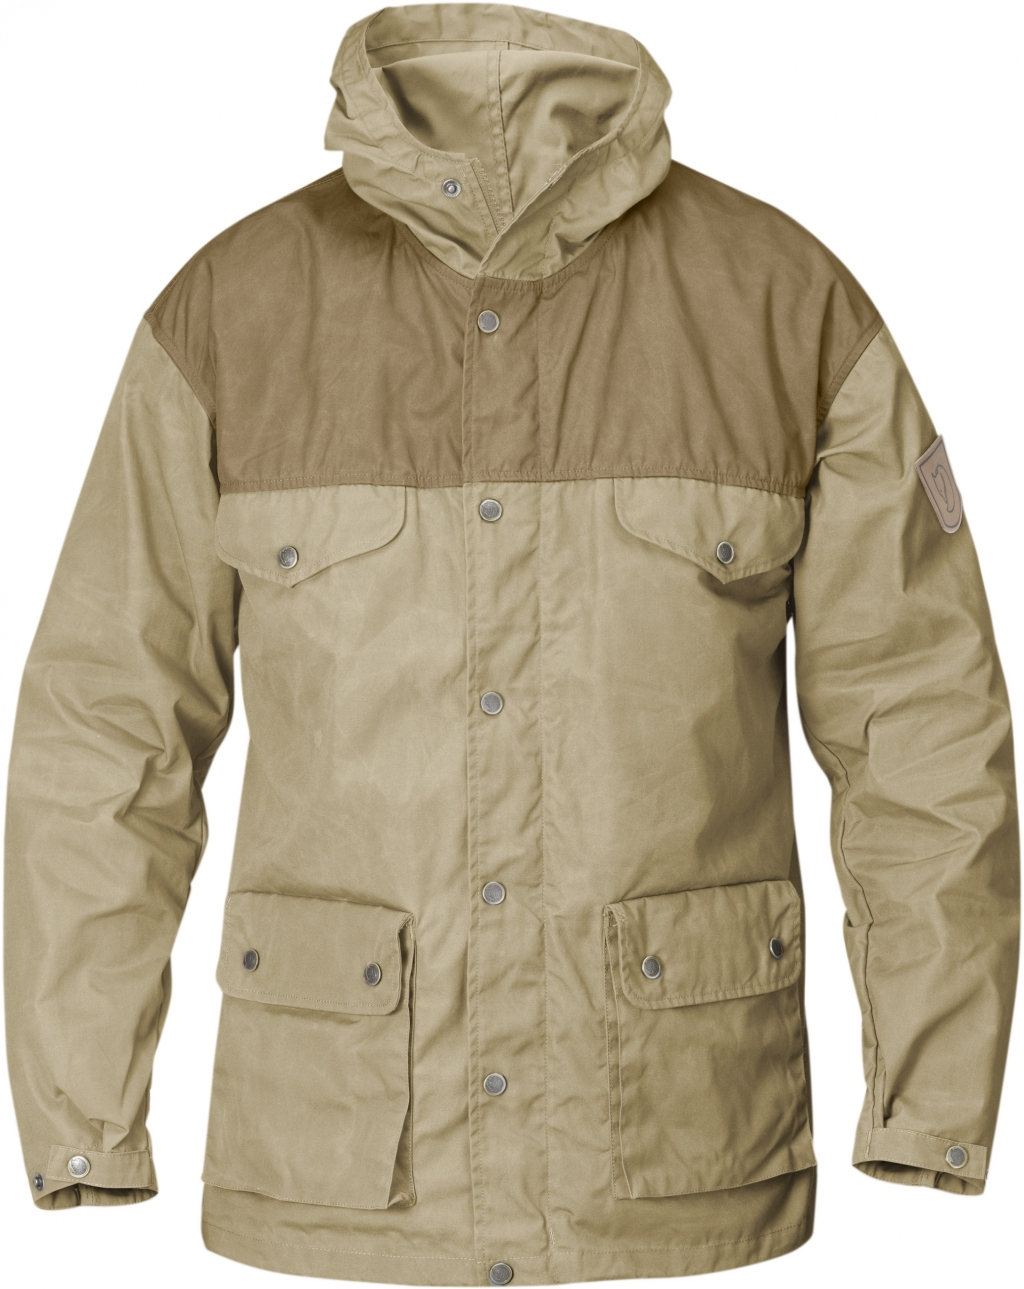 FjallRaven Greenland Jacket Cork Sand-30